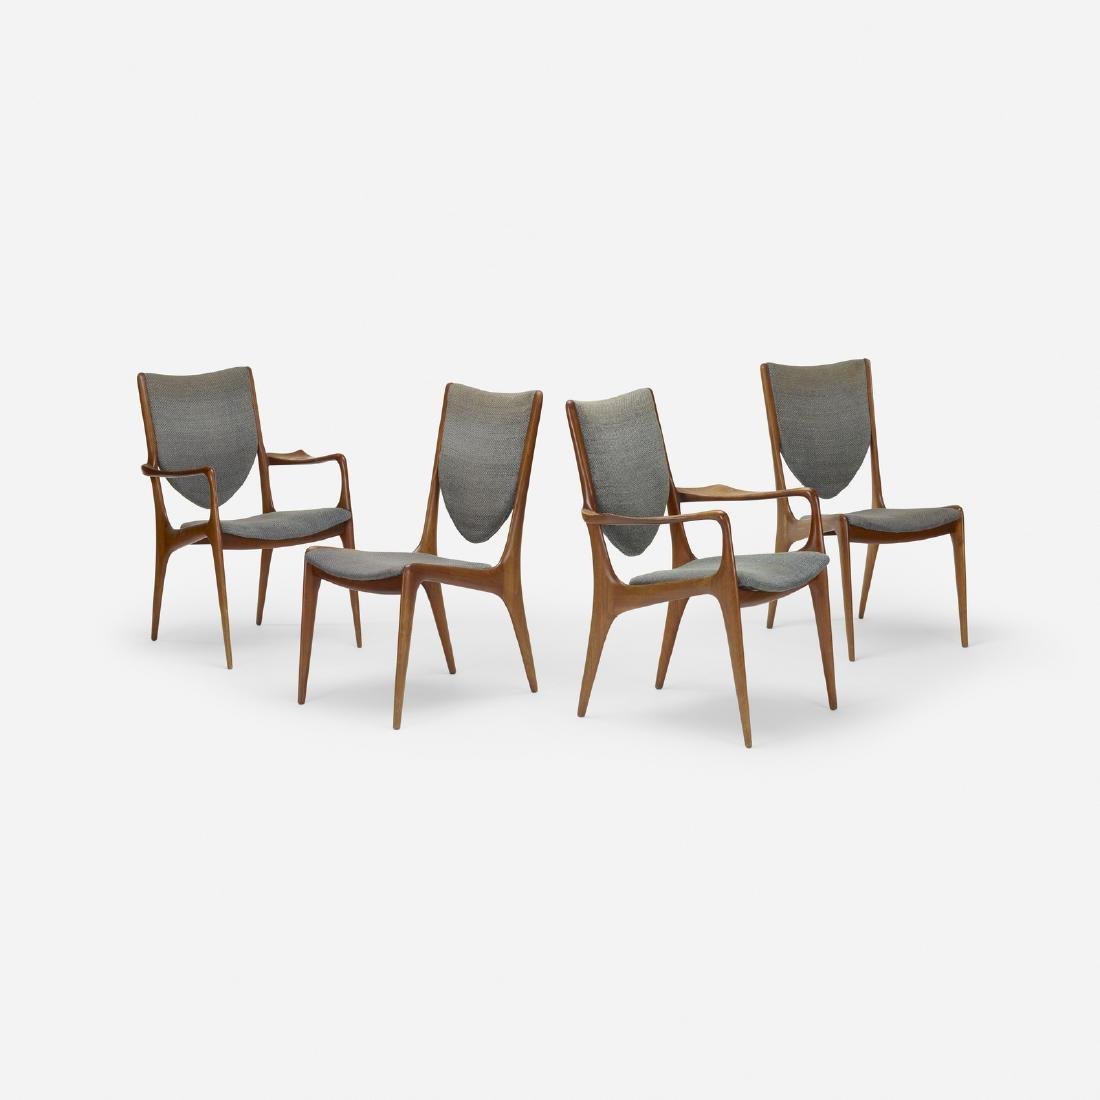 Vladimir Kagan, Shield Back dining chairs, set of four